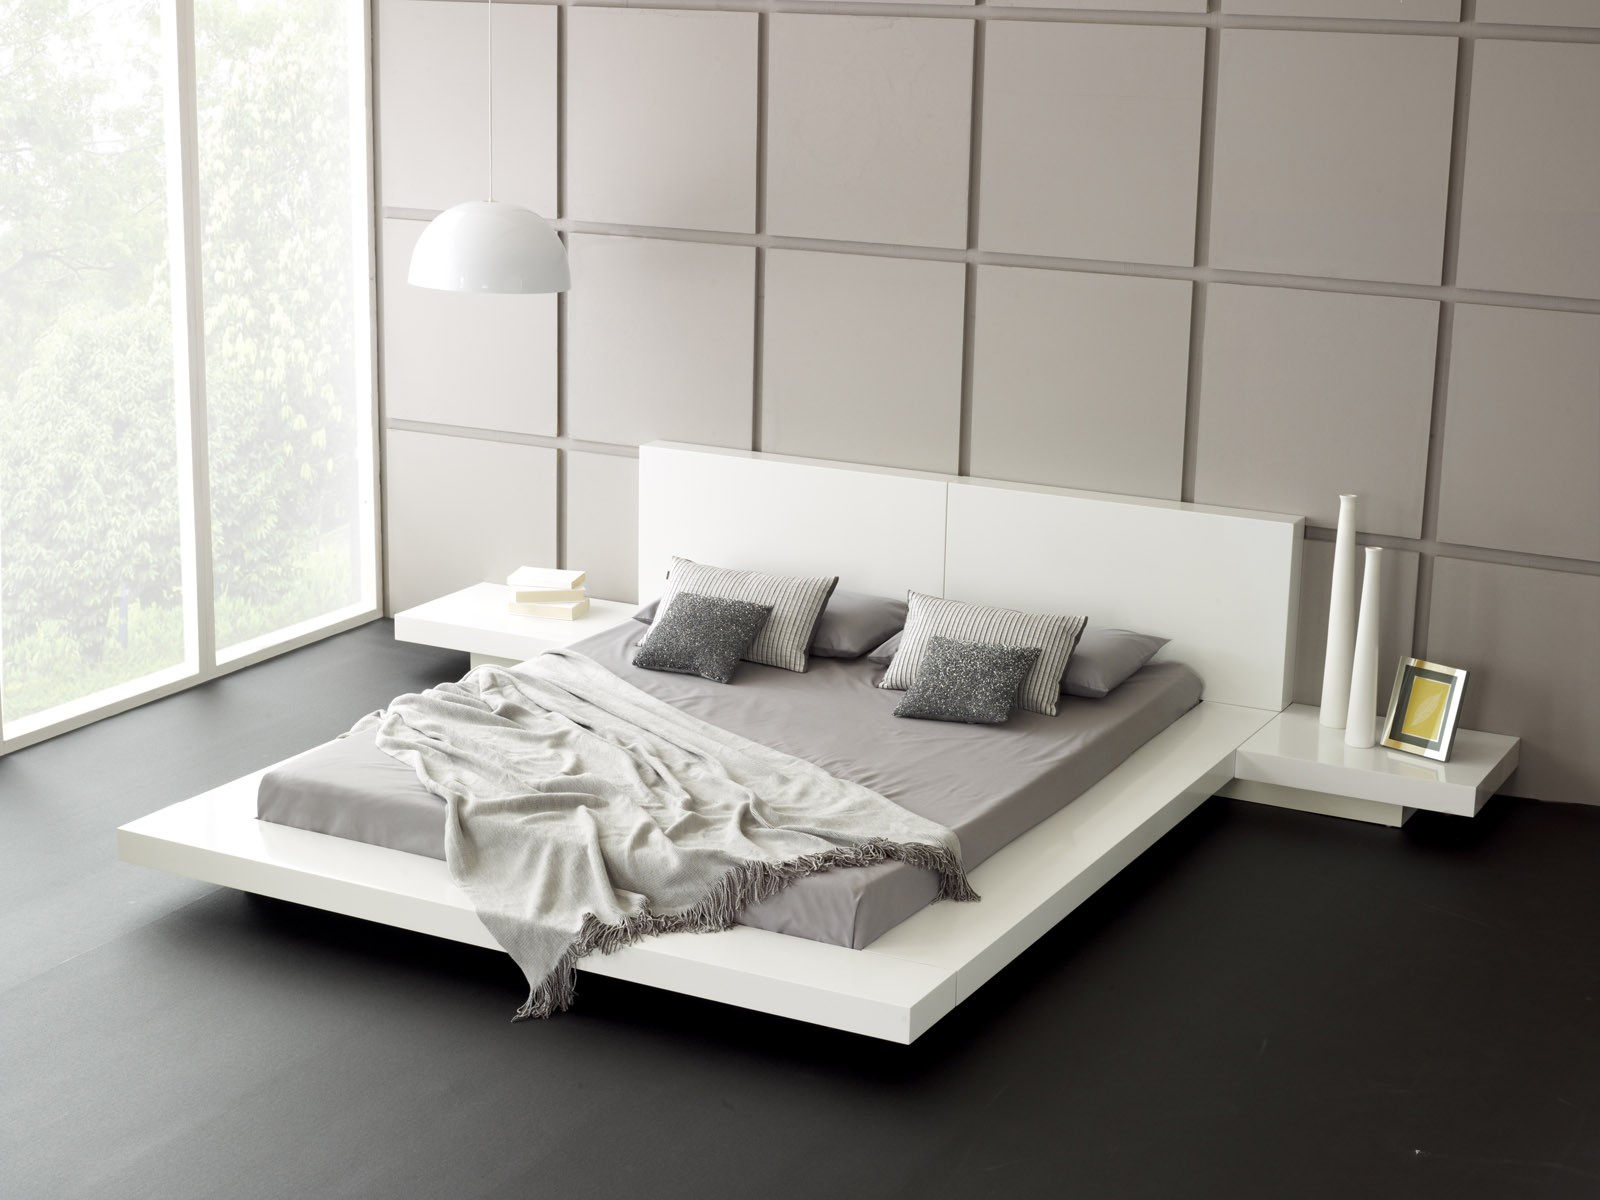 Fullsize Of Low Profile Bed